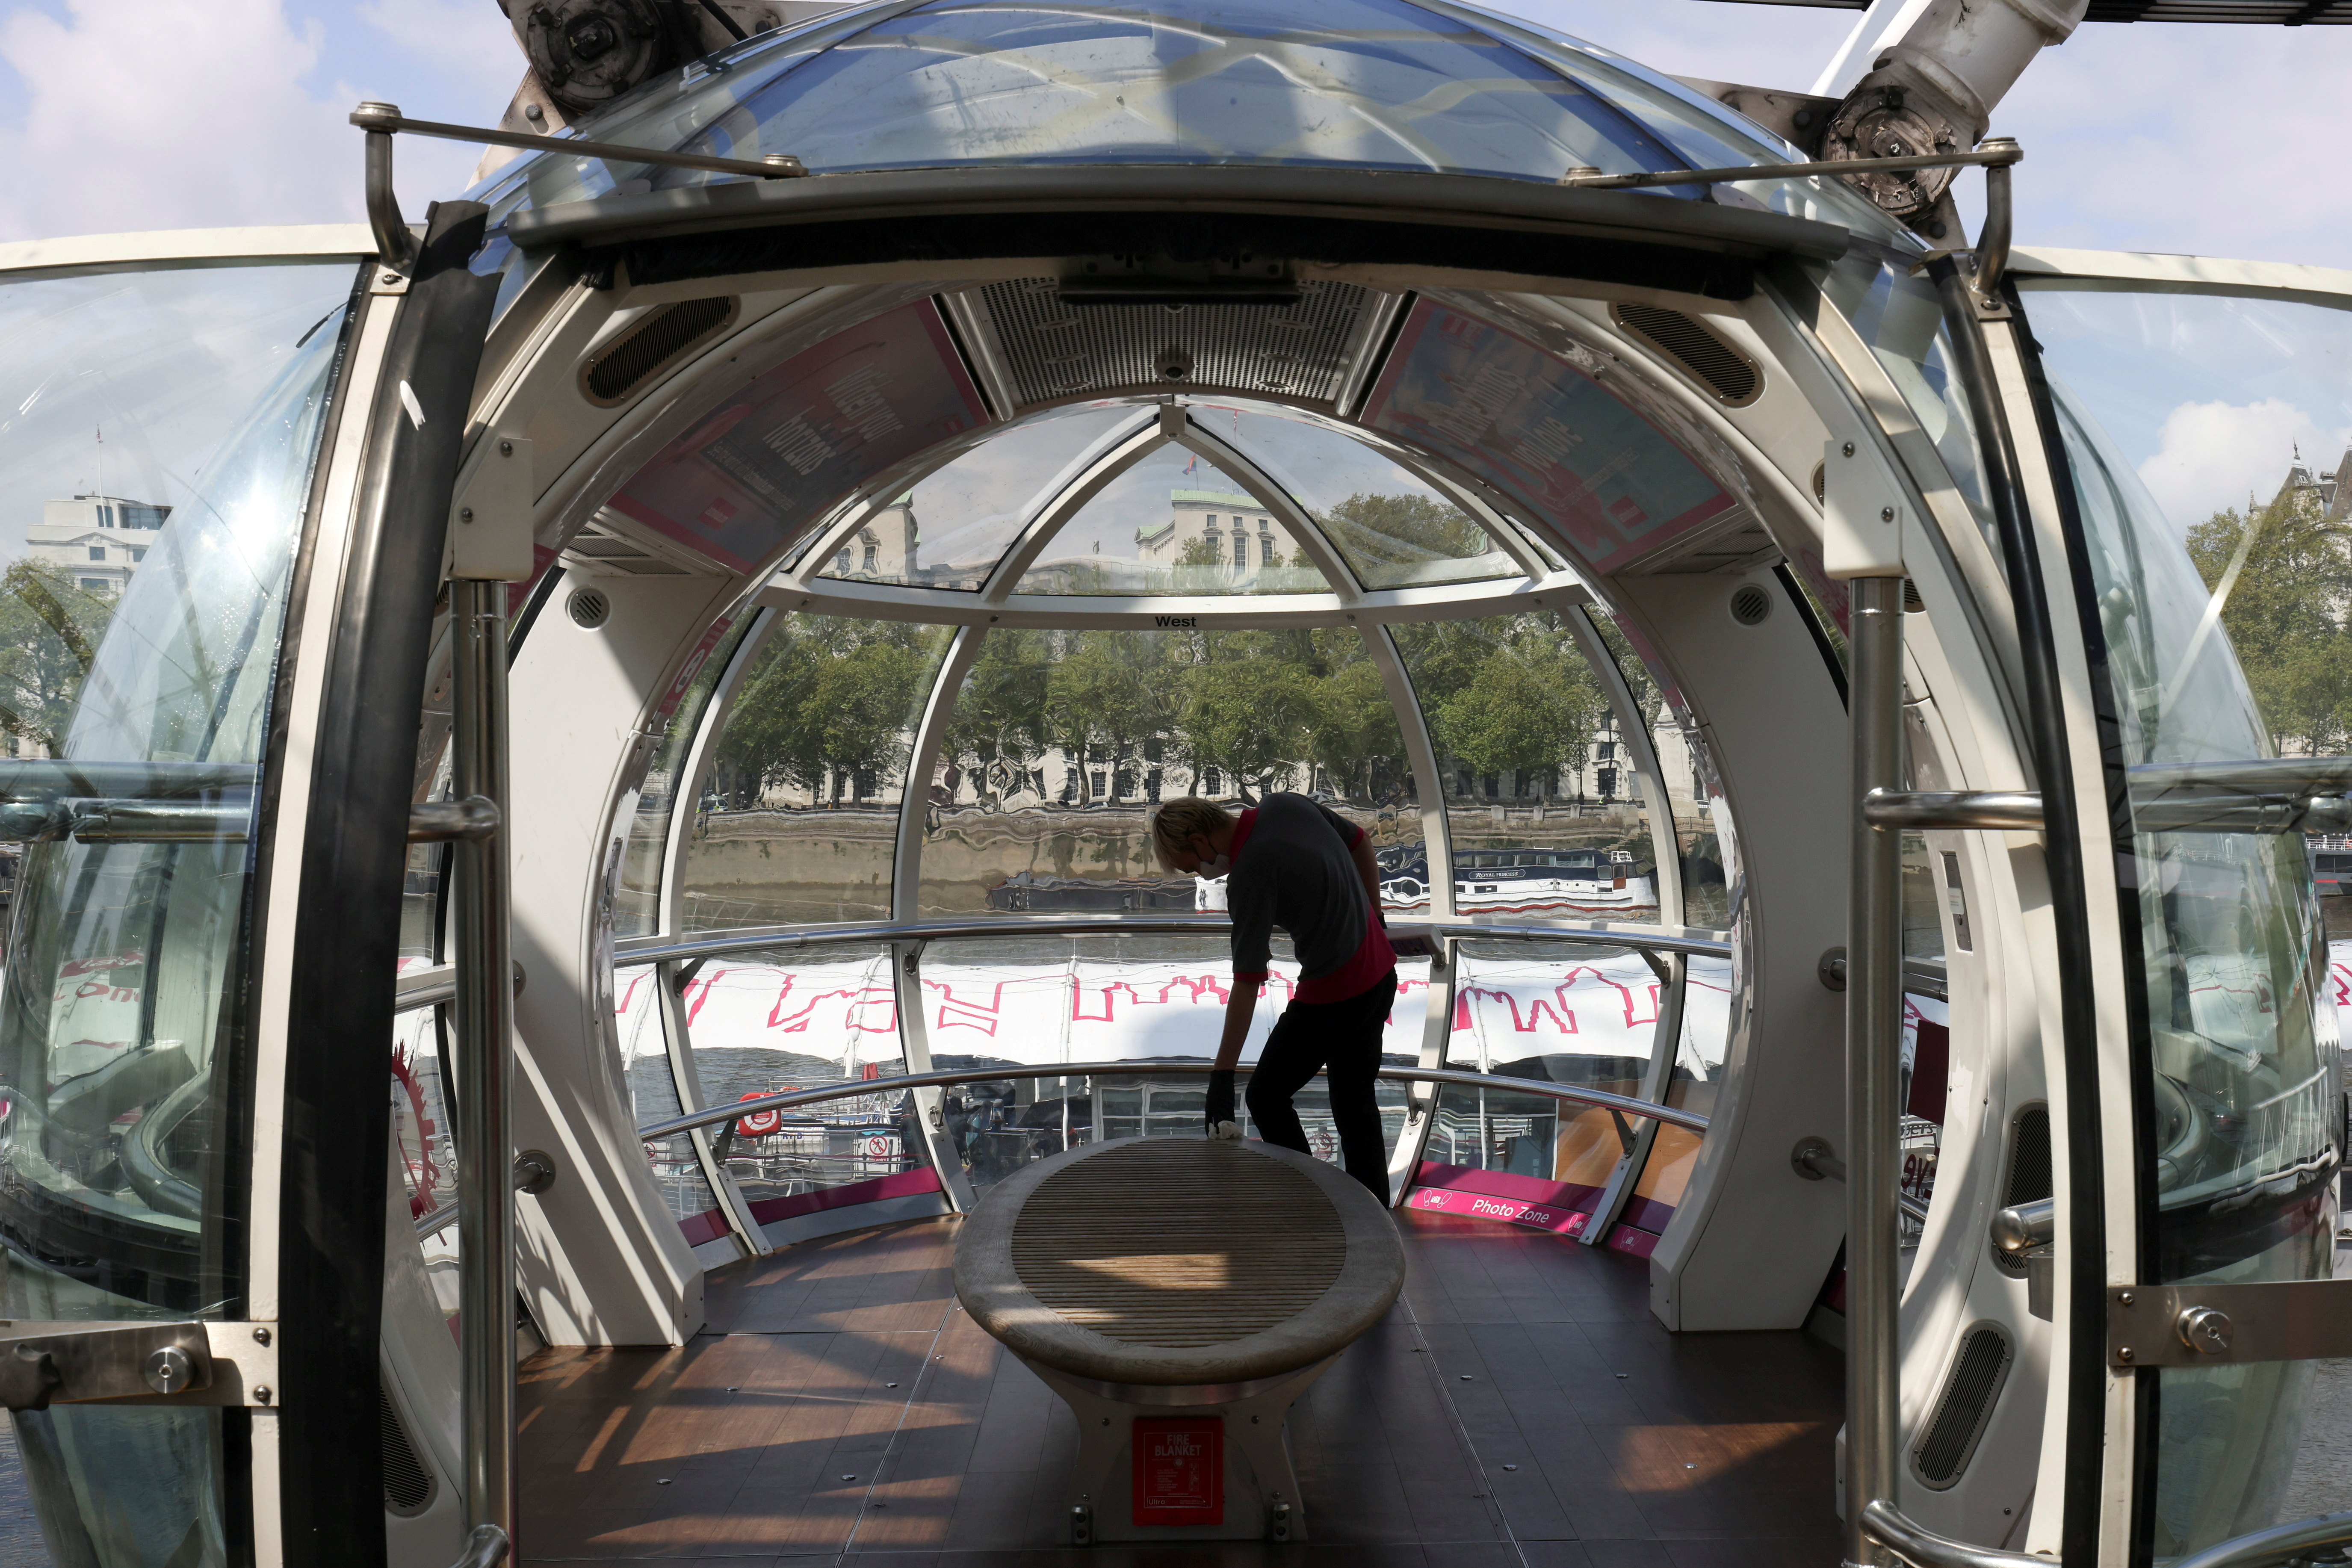 A worker cleans the interior of the London Eye' capsule as the attraction reopens while coronavirus disease (COVID-19) restrictions continue to ease in London, Britain, May 17, 2021. REUTERS/Tom Nicholson